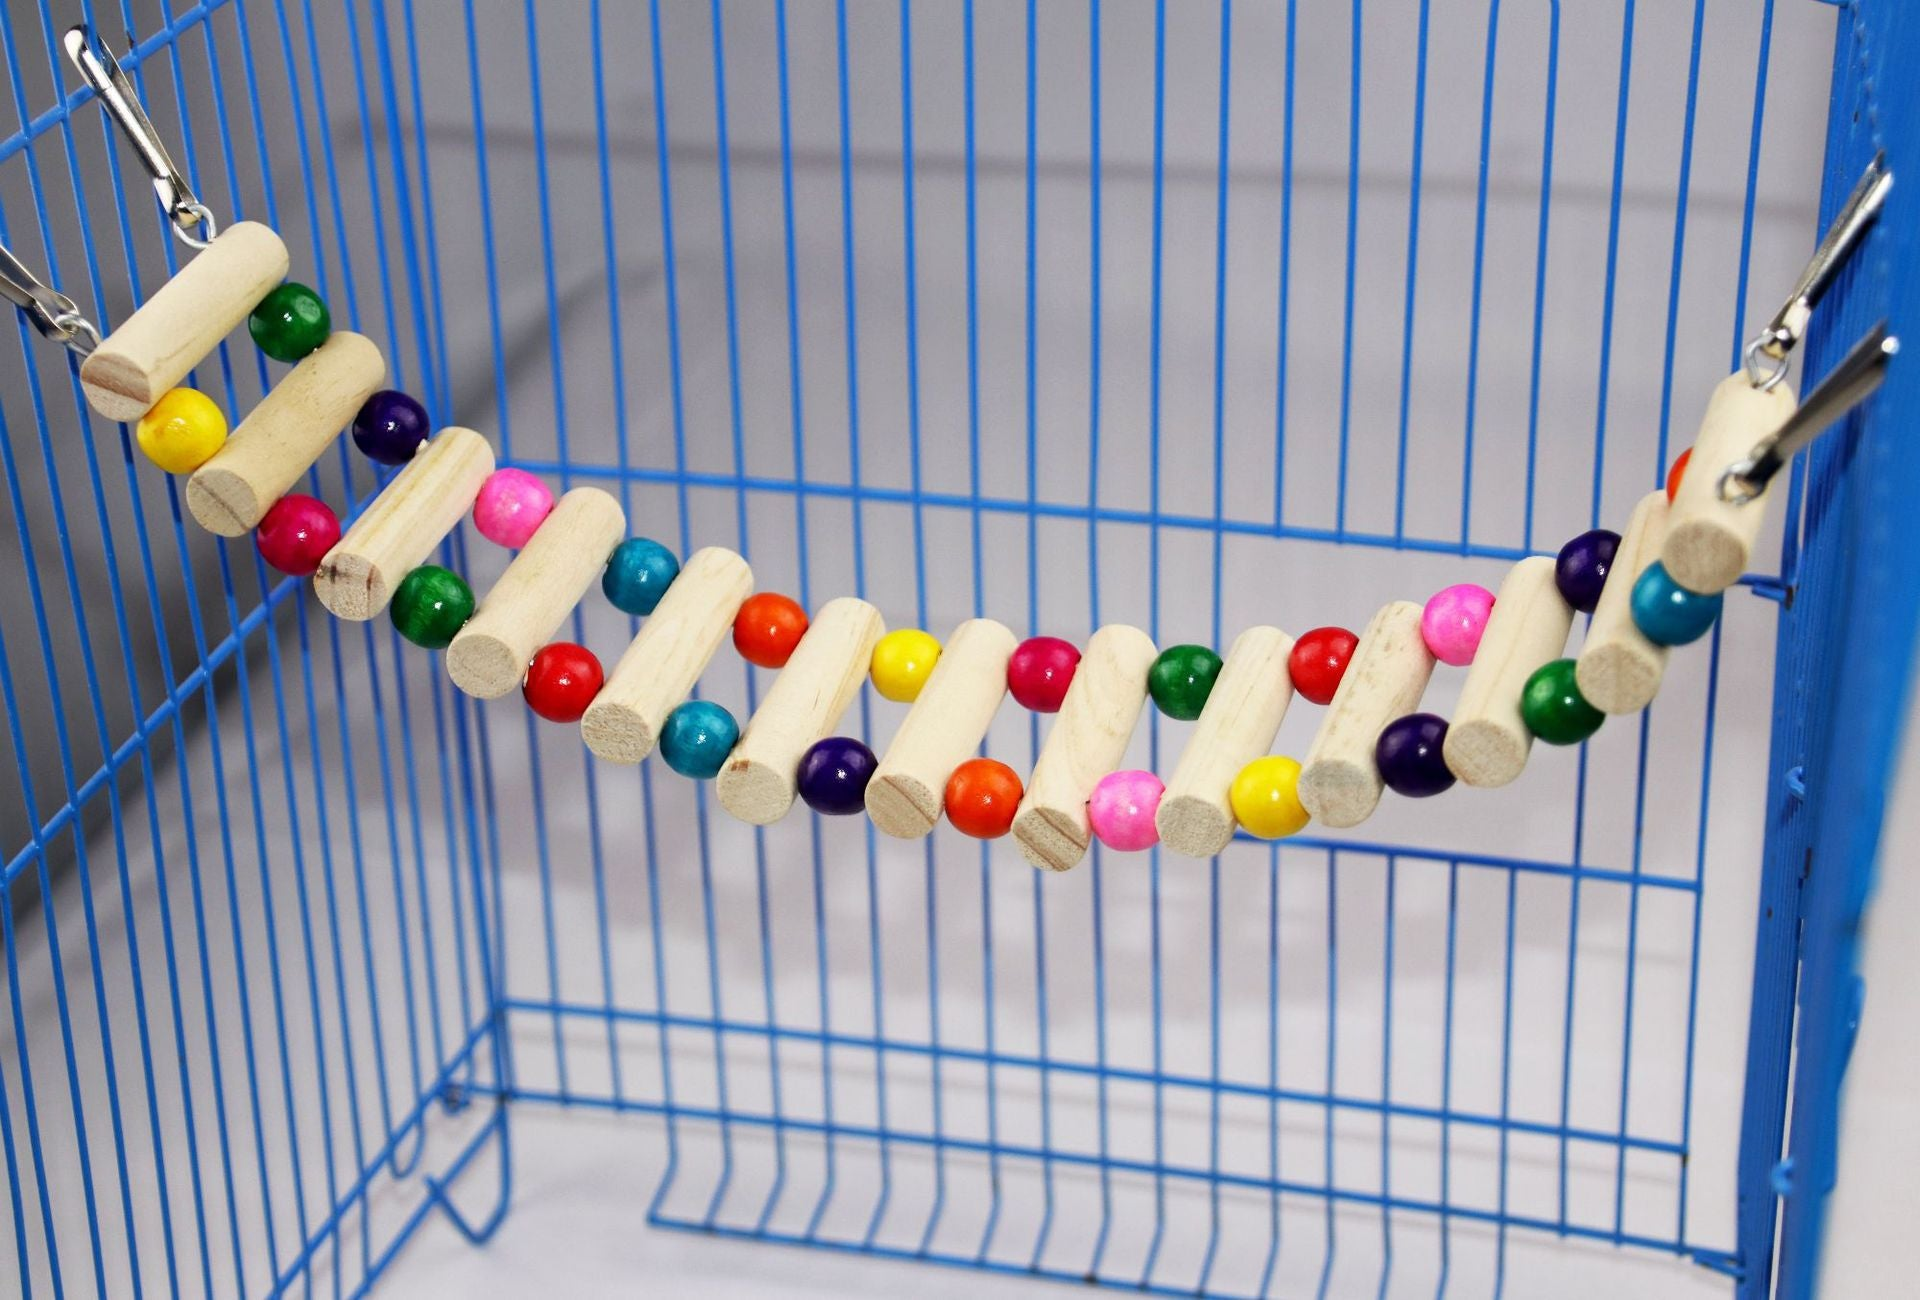 Parrot bird cage toy soft bridge ropeway hamster suspension bridge honey bag squirrel squirrel ladder stairs pet swing